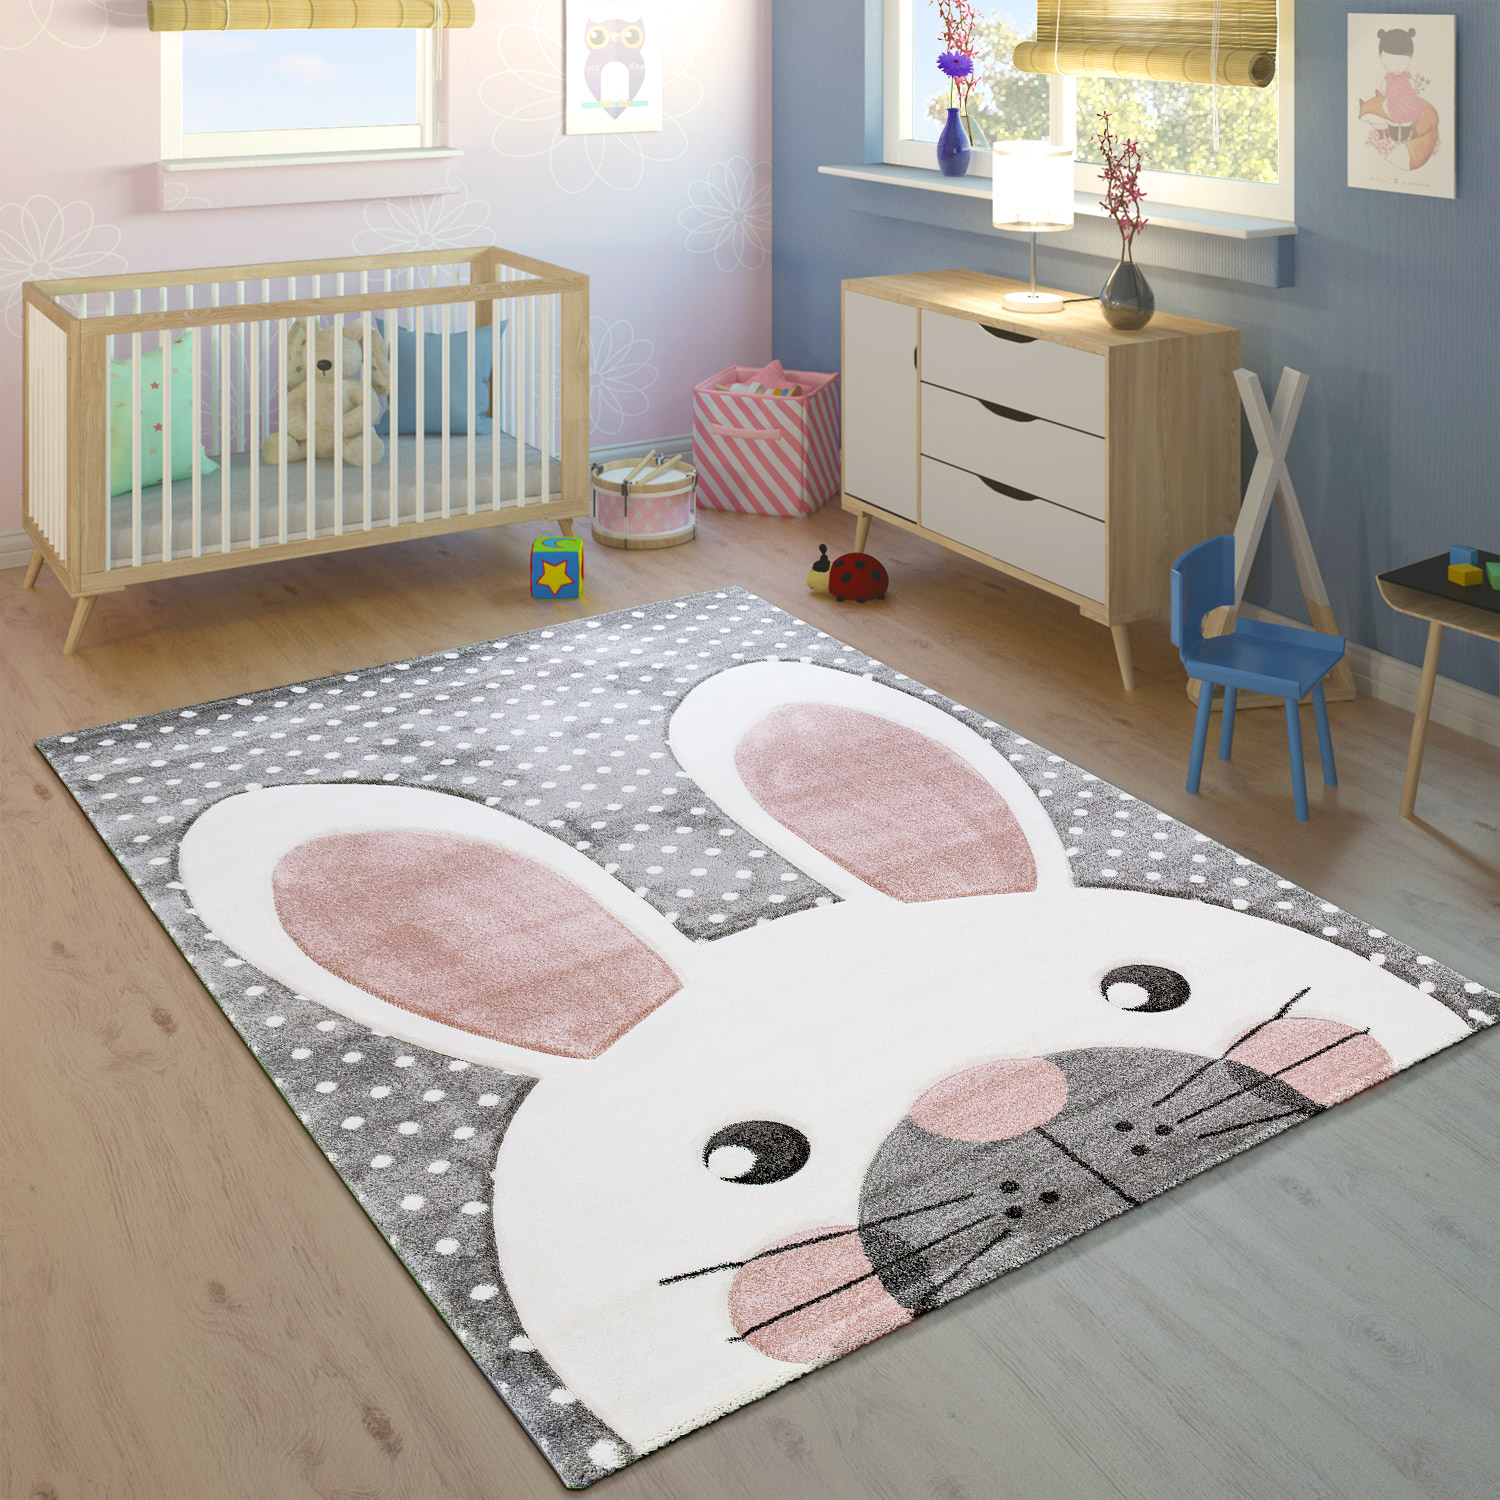 kinderteppich kinderzimmer konturenschnitt niedlicher hase grau creme rosa teppiche aktuelle werbung. Black Bedroom Furniture Sets. Home Design Ideas